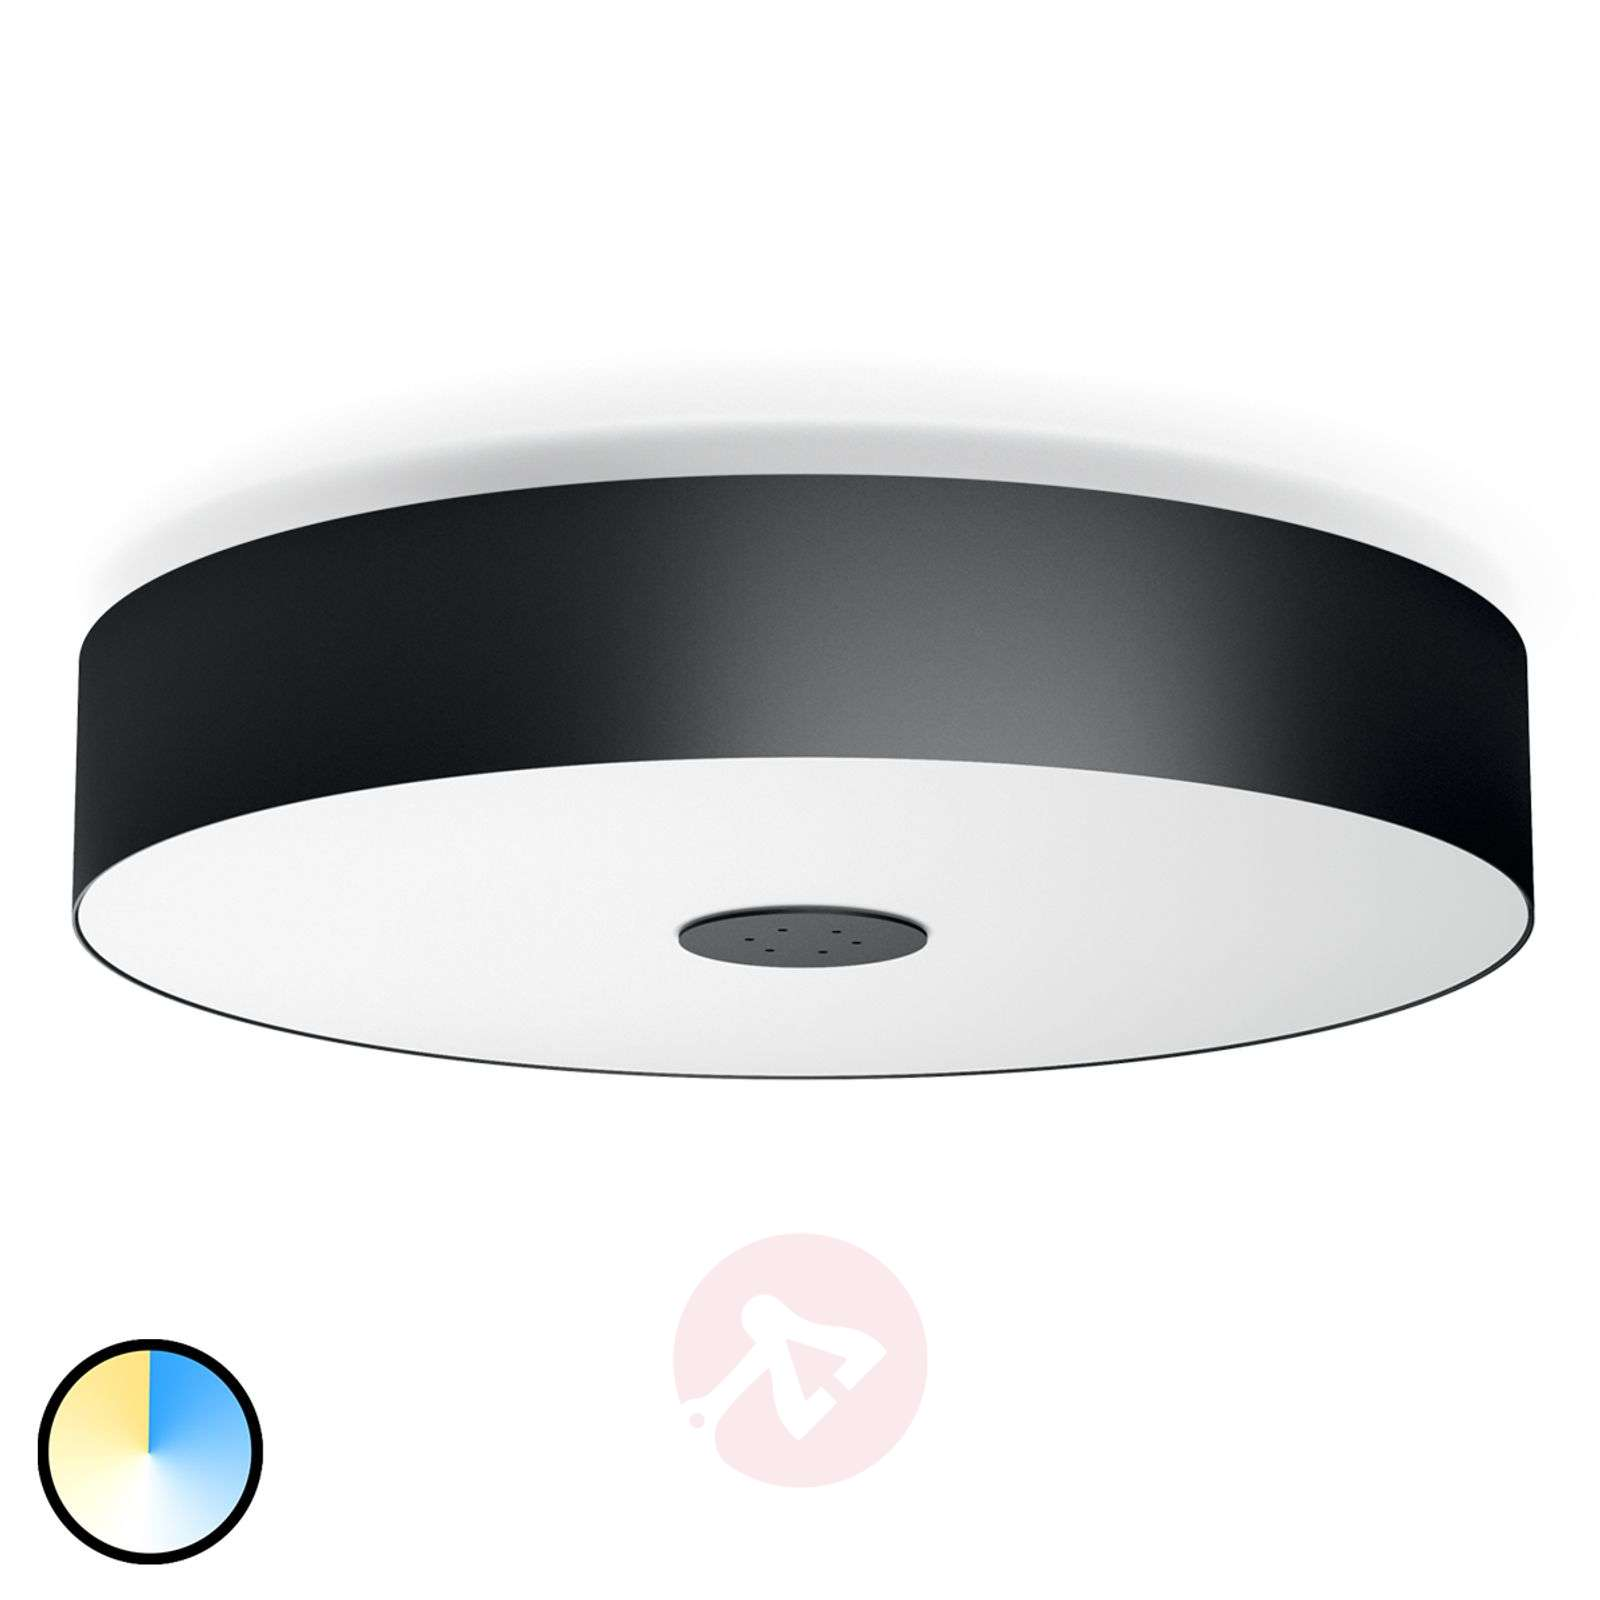 Led Ceiling Lights Company : Remote control philips hue led ceiling light fair lights